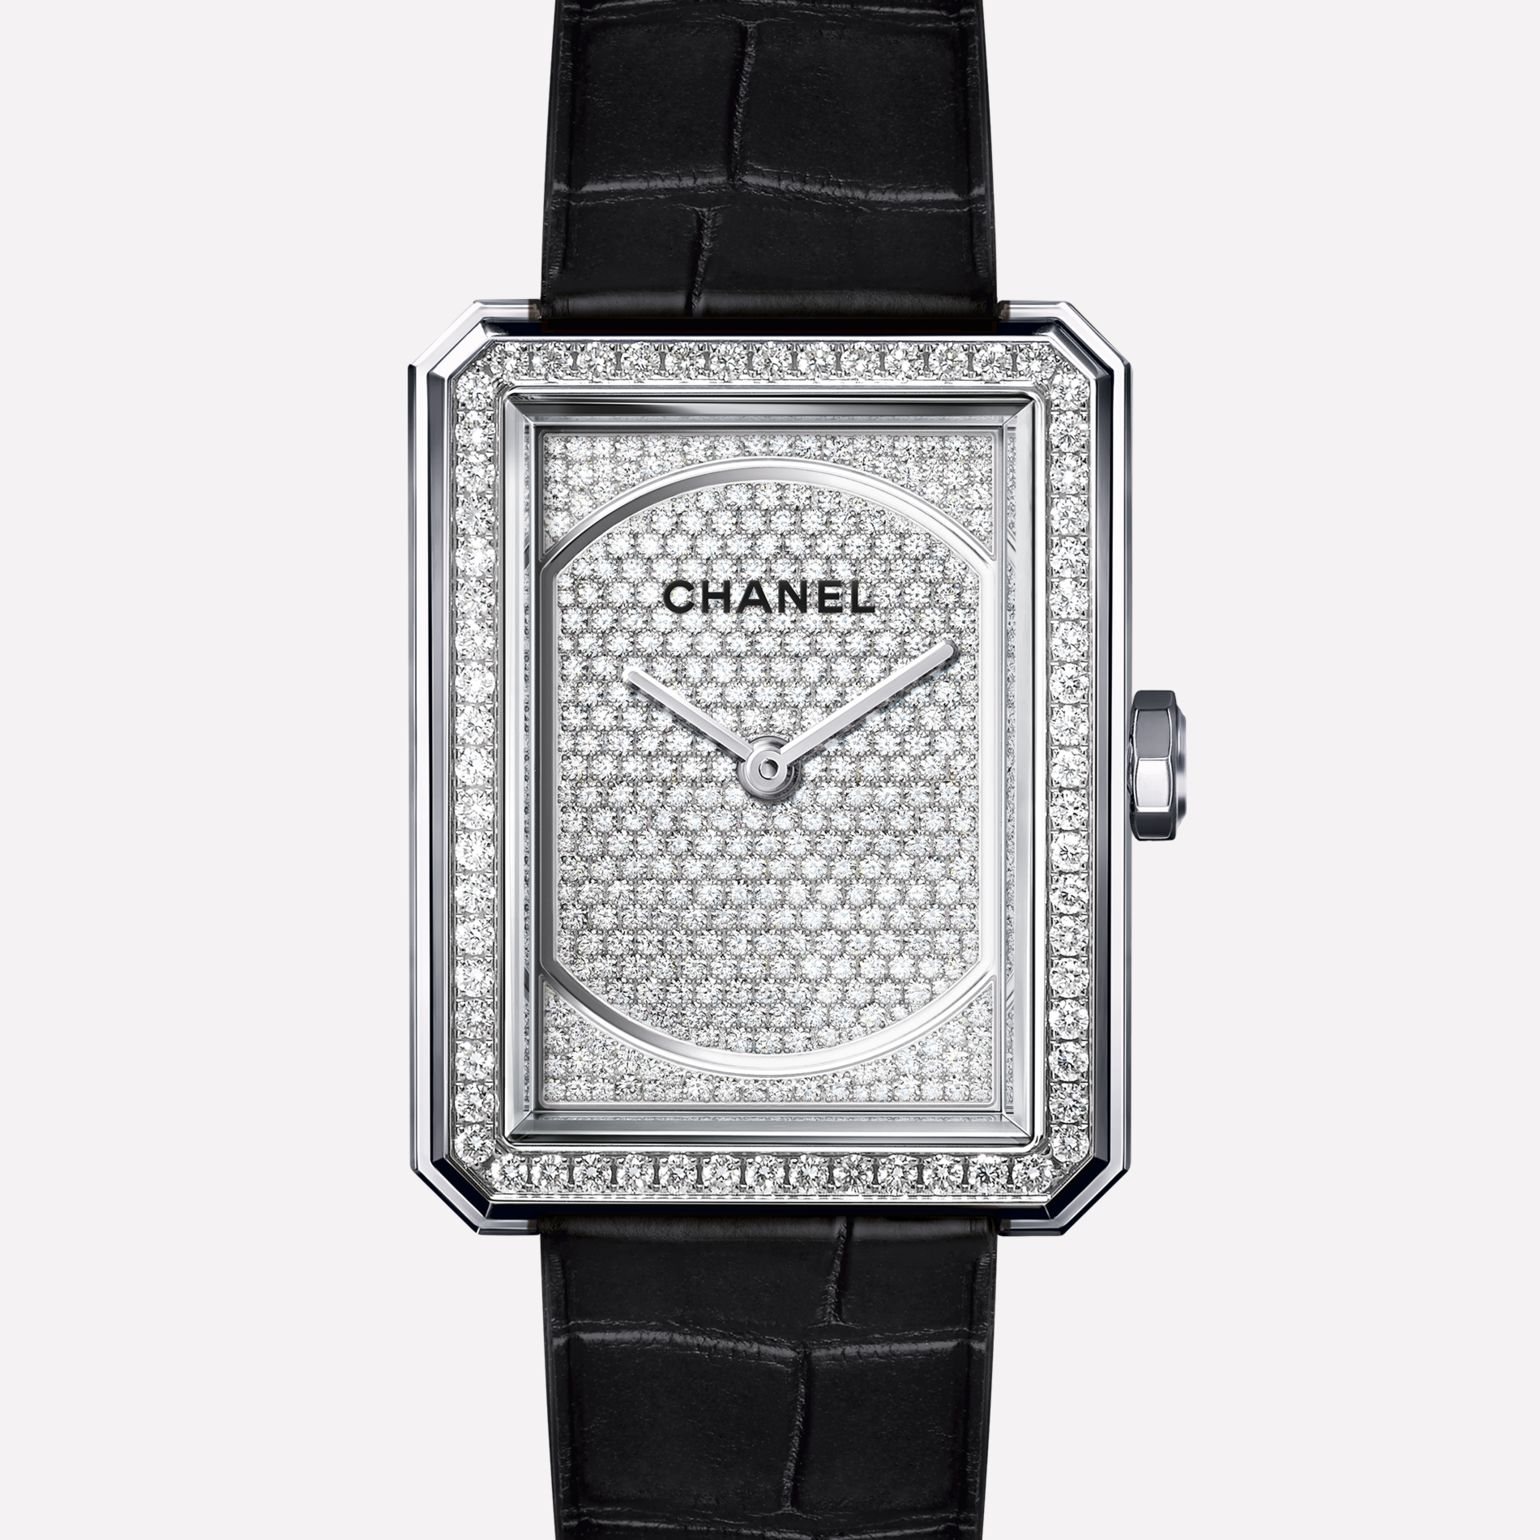 BOY∙FRIEND Medium version, white gold and dial set with diamonds, alligator strap